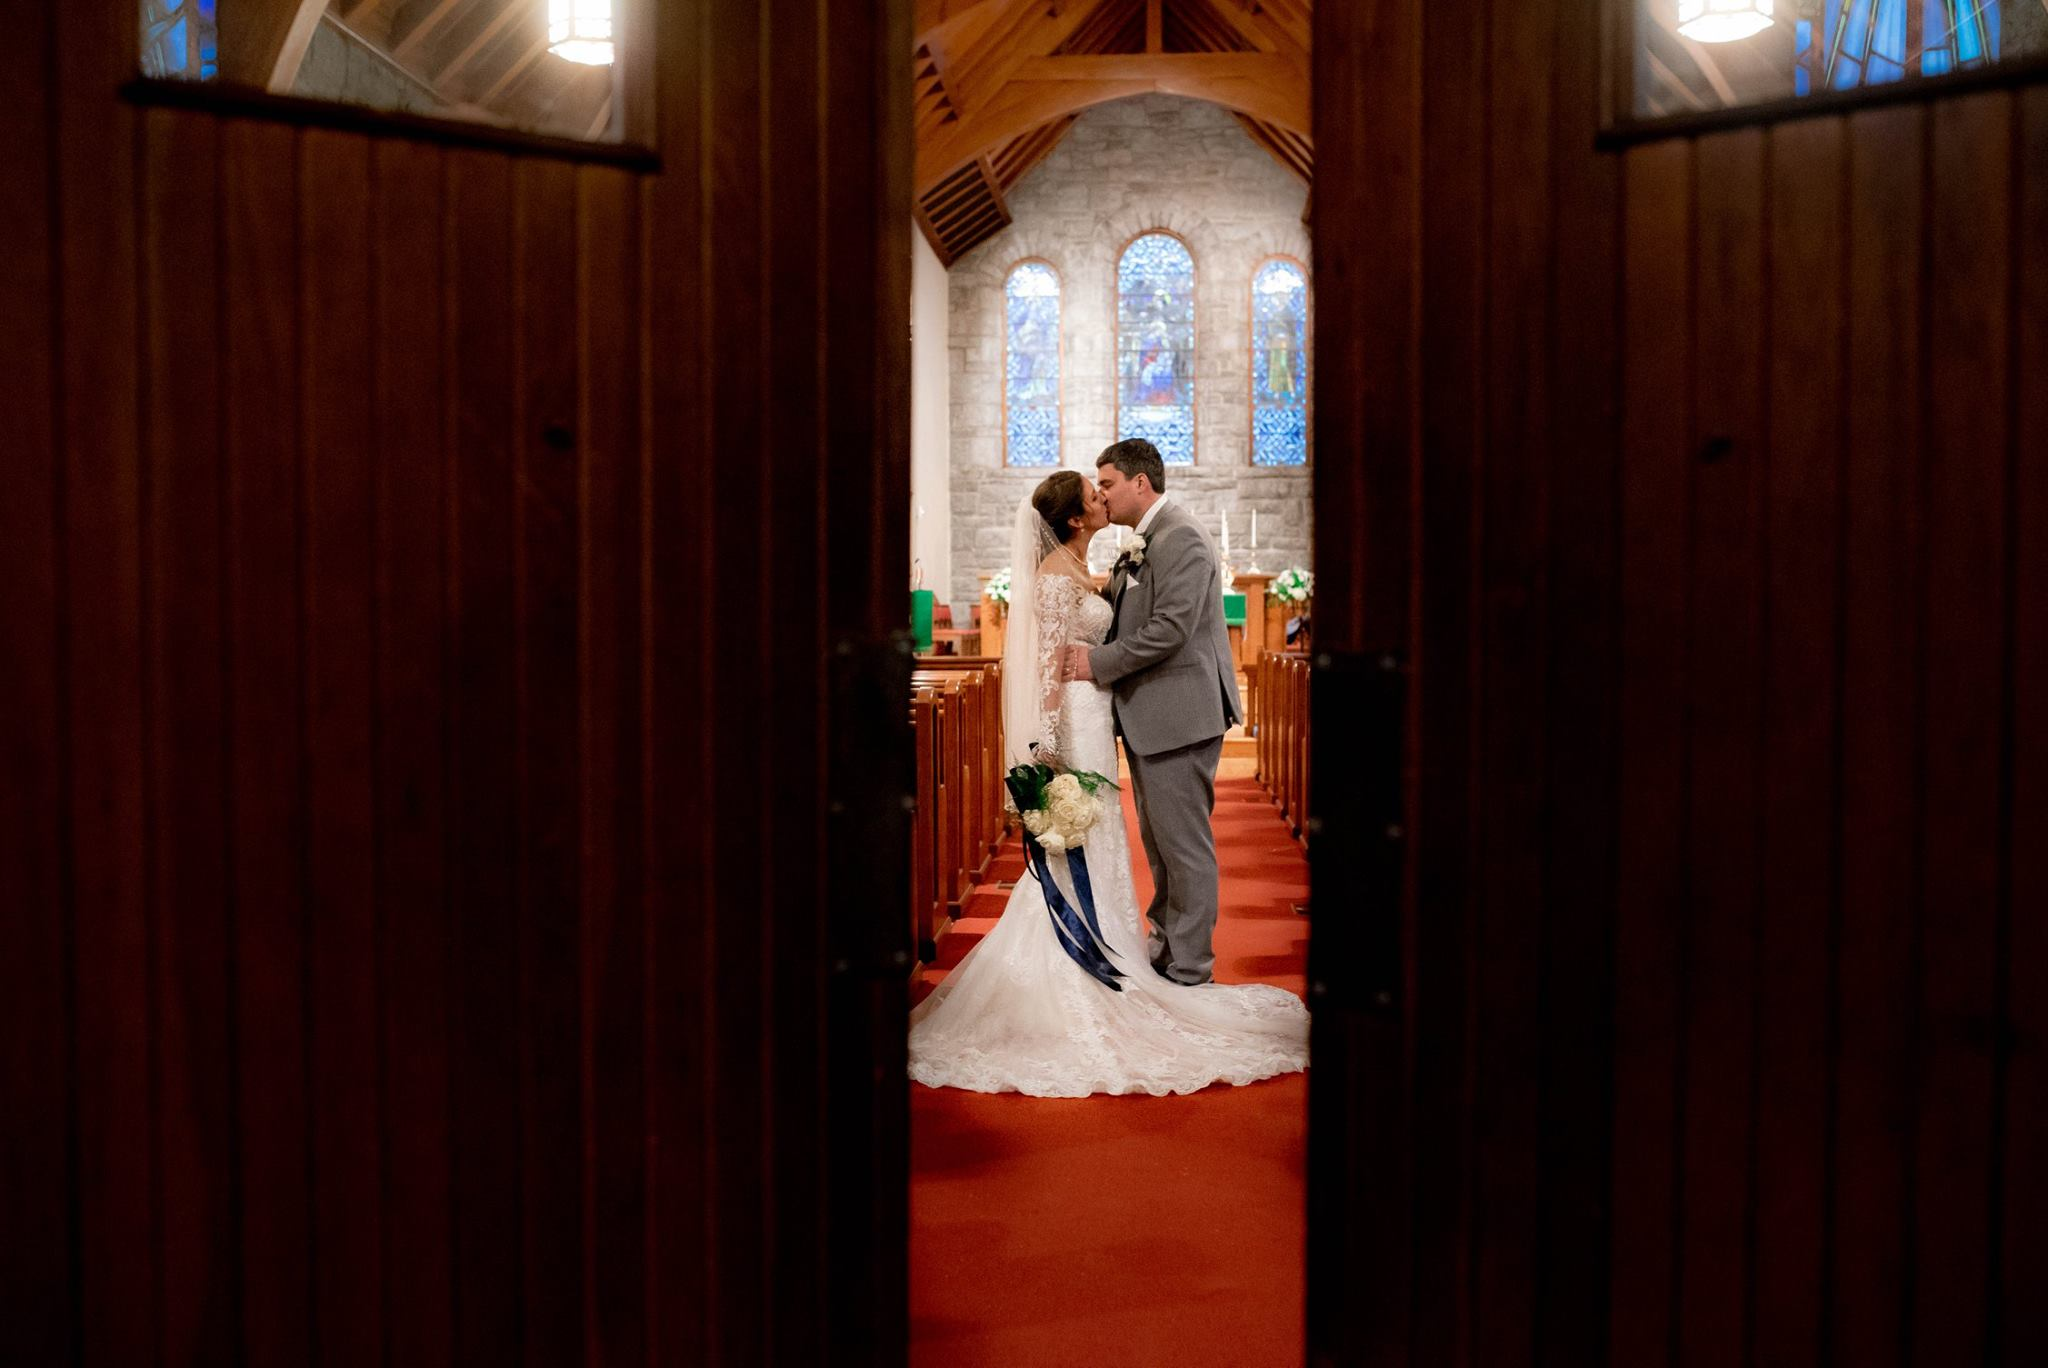 COUPLE KISSING AT St. Philip's Episcopal Church IN BREVARD, NORTH CAROLINA JUST AFTER THEIR BEAUTIFUL CEREMONY. NEXT THEY ARE OFF TO THEIR INCREDIBLE RECEPTION AT THE INN AT BREVARD.